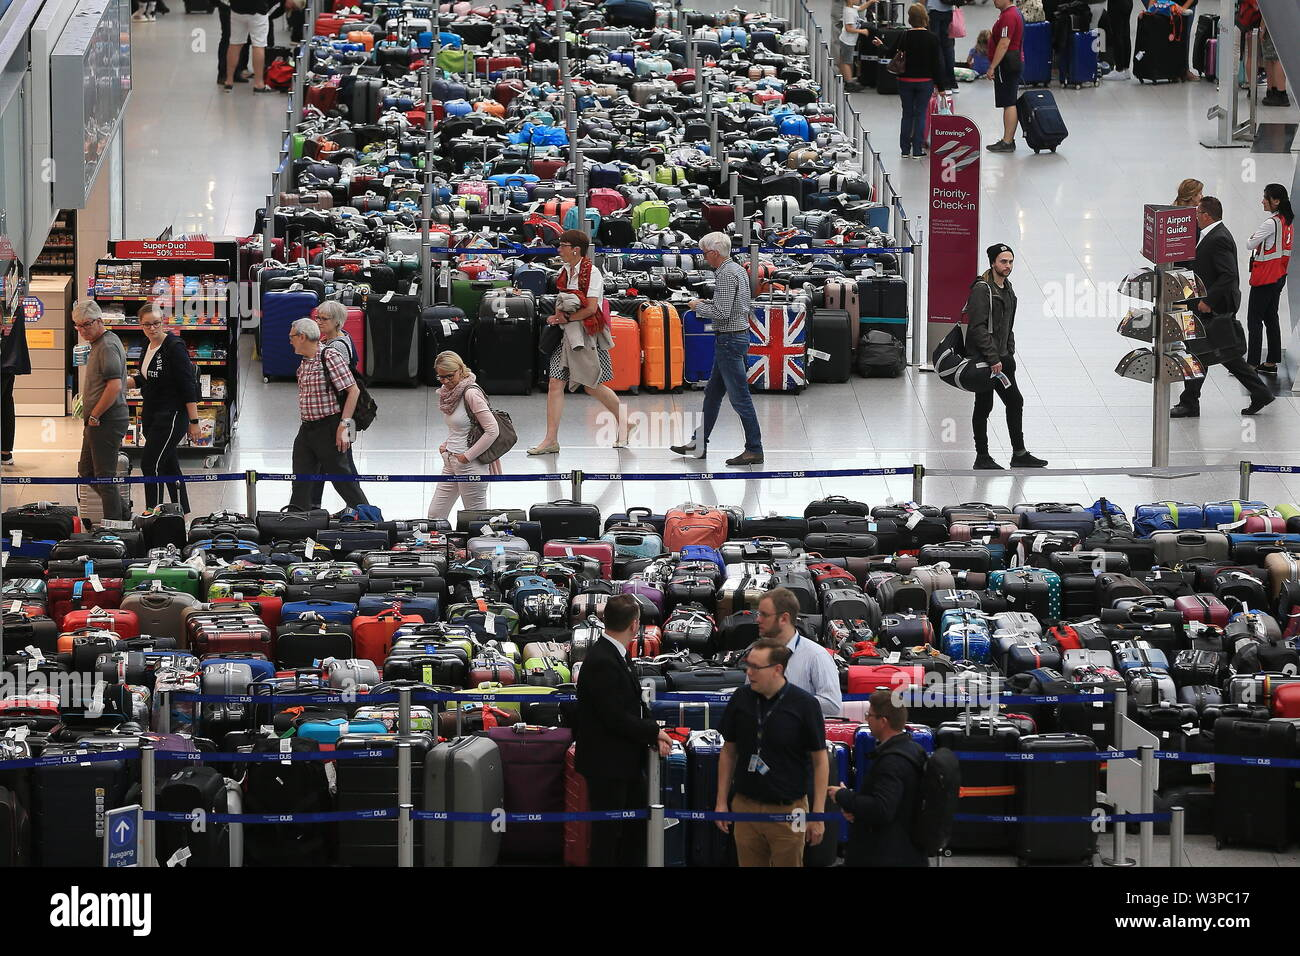 Duesseldorf, Germany. 17th July, 2019. Several hundred pieces of luggage are standing in the departure hall of Düsseldorf Airport. Due to a technical malfunction, passengers at Düsseldorf Airport had to adjust to problems with baggage handling. Credit: David Young/dpa/Alamy Live News - Stock Image